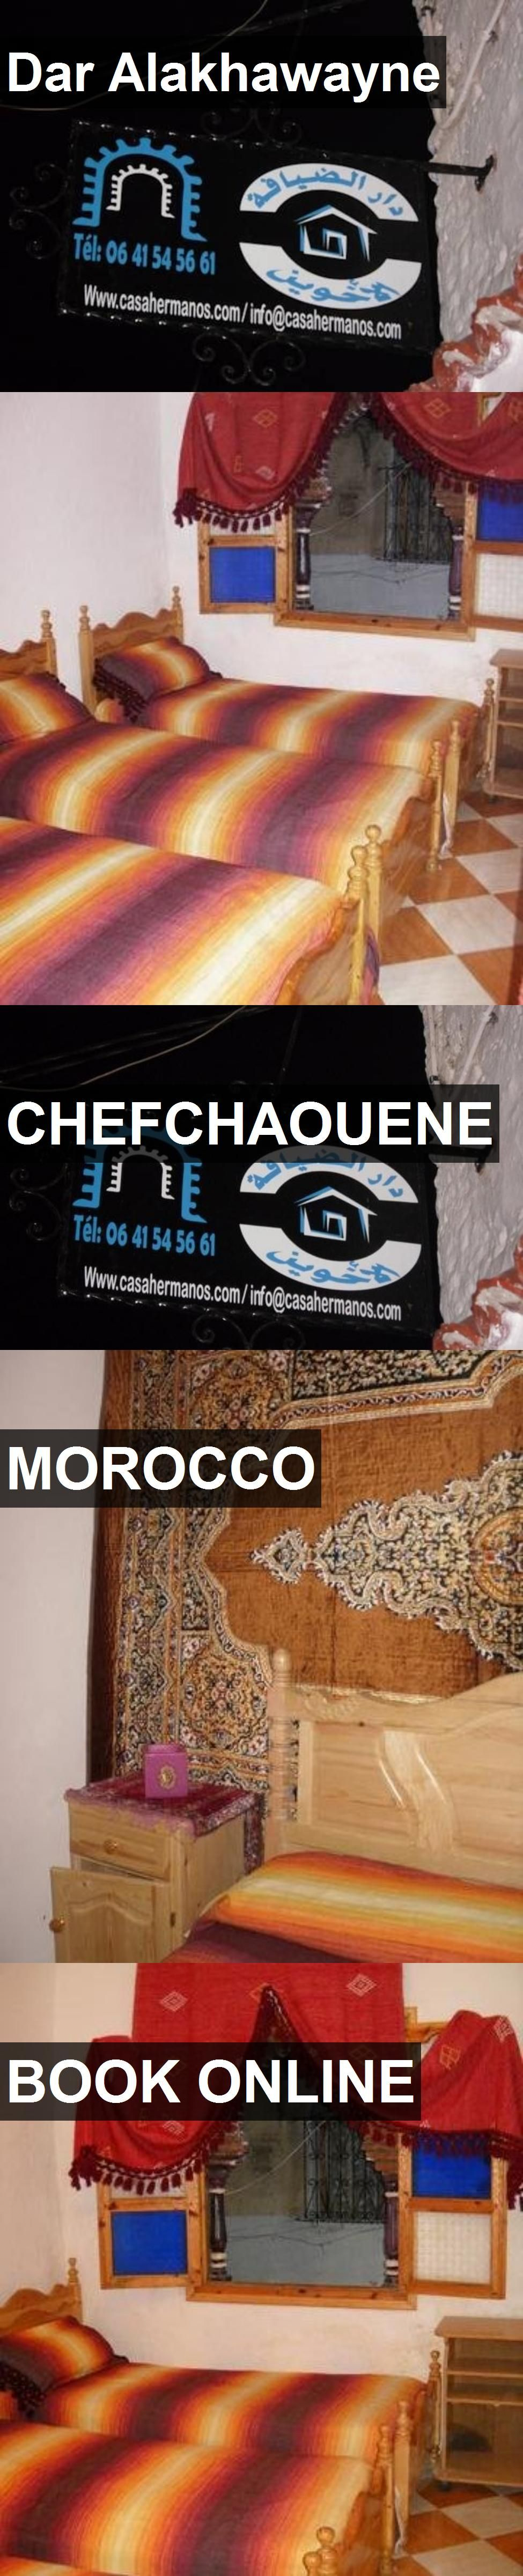 Hotel Dar Alakhawayne in Chefchaouene, Morocco. For more information, photos, reviews and best prices please follow the link. #Morocco #Chefchaouene #travel #vacation #hotel